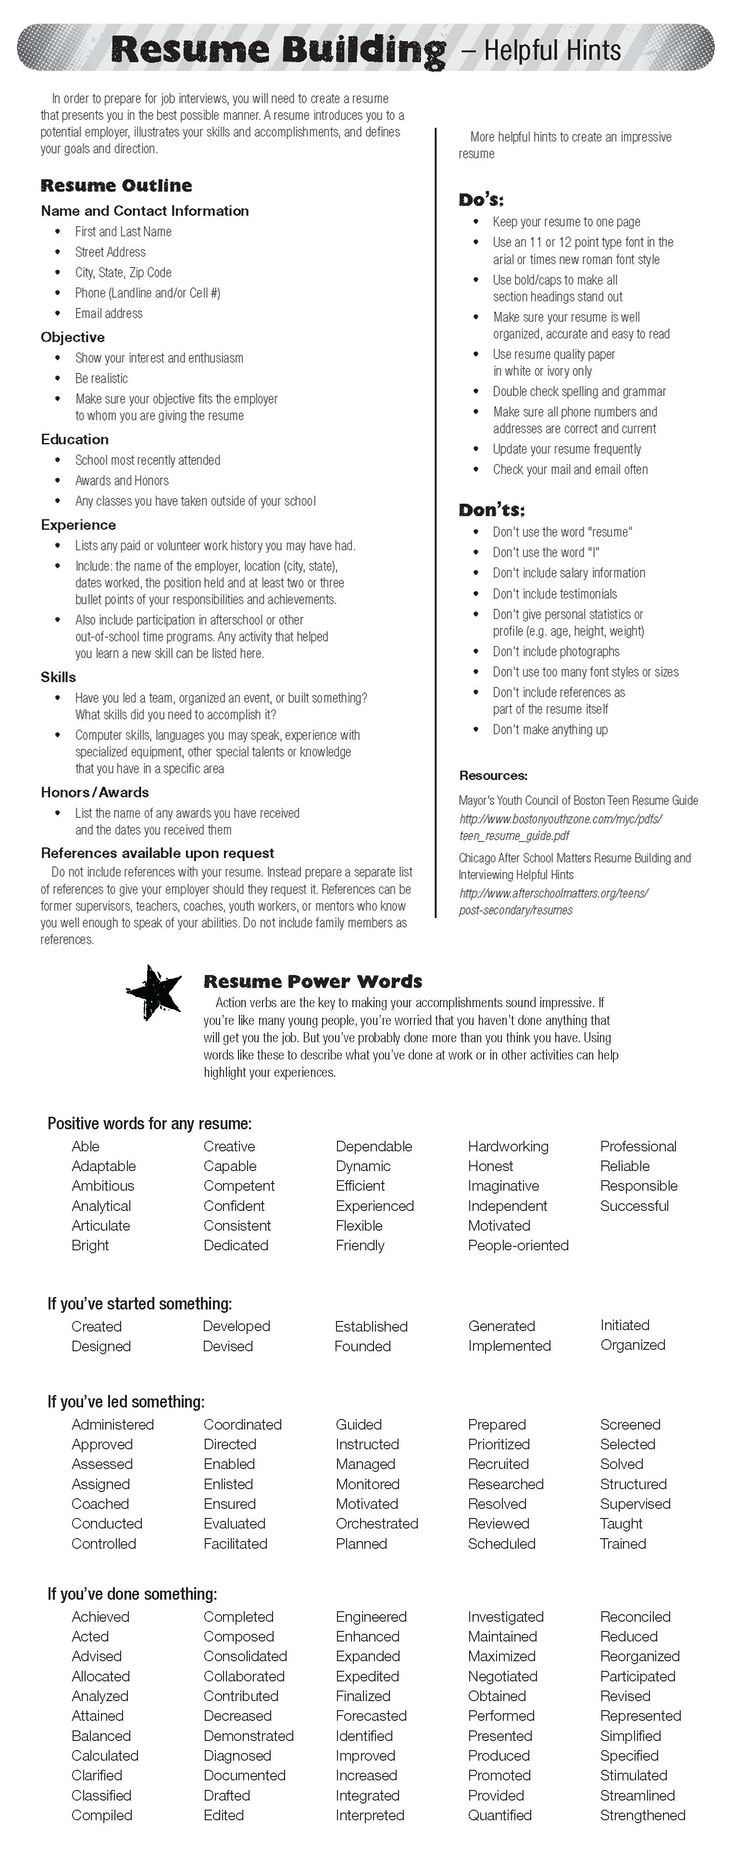 Opposenewapstandardsus  Stunning  Ideas About Resume On Pinterest  Cv Format Resume Cv And  With Exquisite  Ideas About Resume On Pinterest  Cv Format Resume Cv And Resume Templates With Enchanting Scannable Resume Definition Also Examples Of It Resumes In Addition Junior Project Manager Resume And Warehouse Worker Job Description Resume As Well As It Resume Template Word Additionally Astronaut Resume From Pinterestcom With Opposenewapstandardsus  Exquisite  Ideas About Resume On Pinterest  Cv Format Resume Cv And  With Enchanting  Ideas About Resume On Pinterest  Cv Format Resume Cv And Resume Templates And Stunning Scannable Resume Definition Also Examples Of It Resumes In Addition Junior Project Manager Resume From Pinterestcom